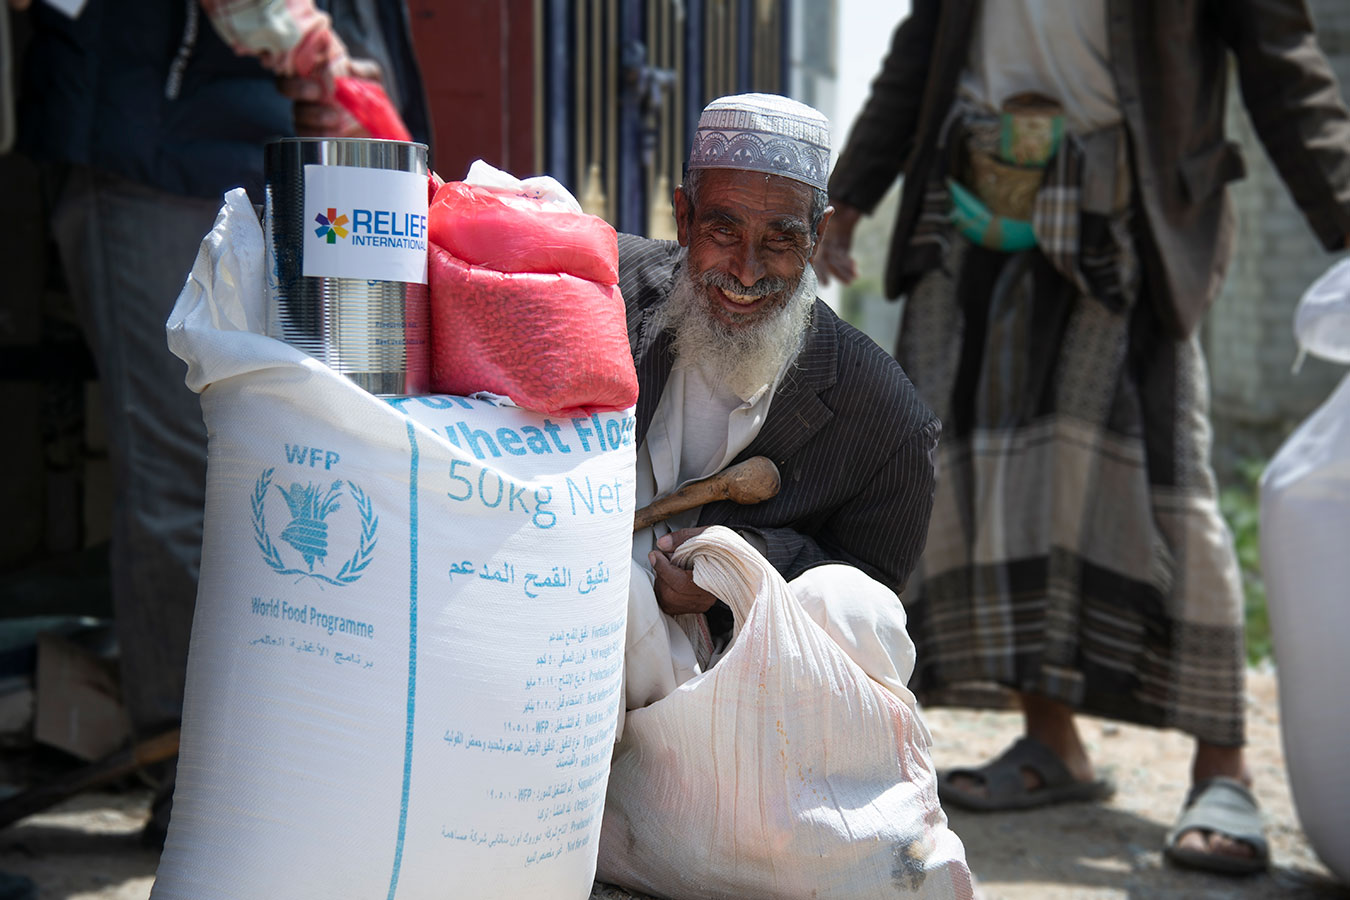 yemen-project-hero-wfp.jpg